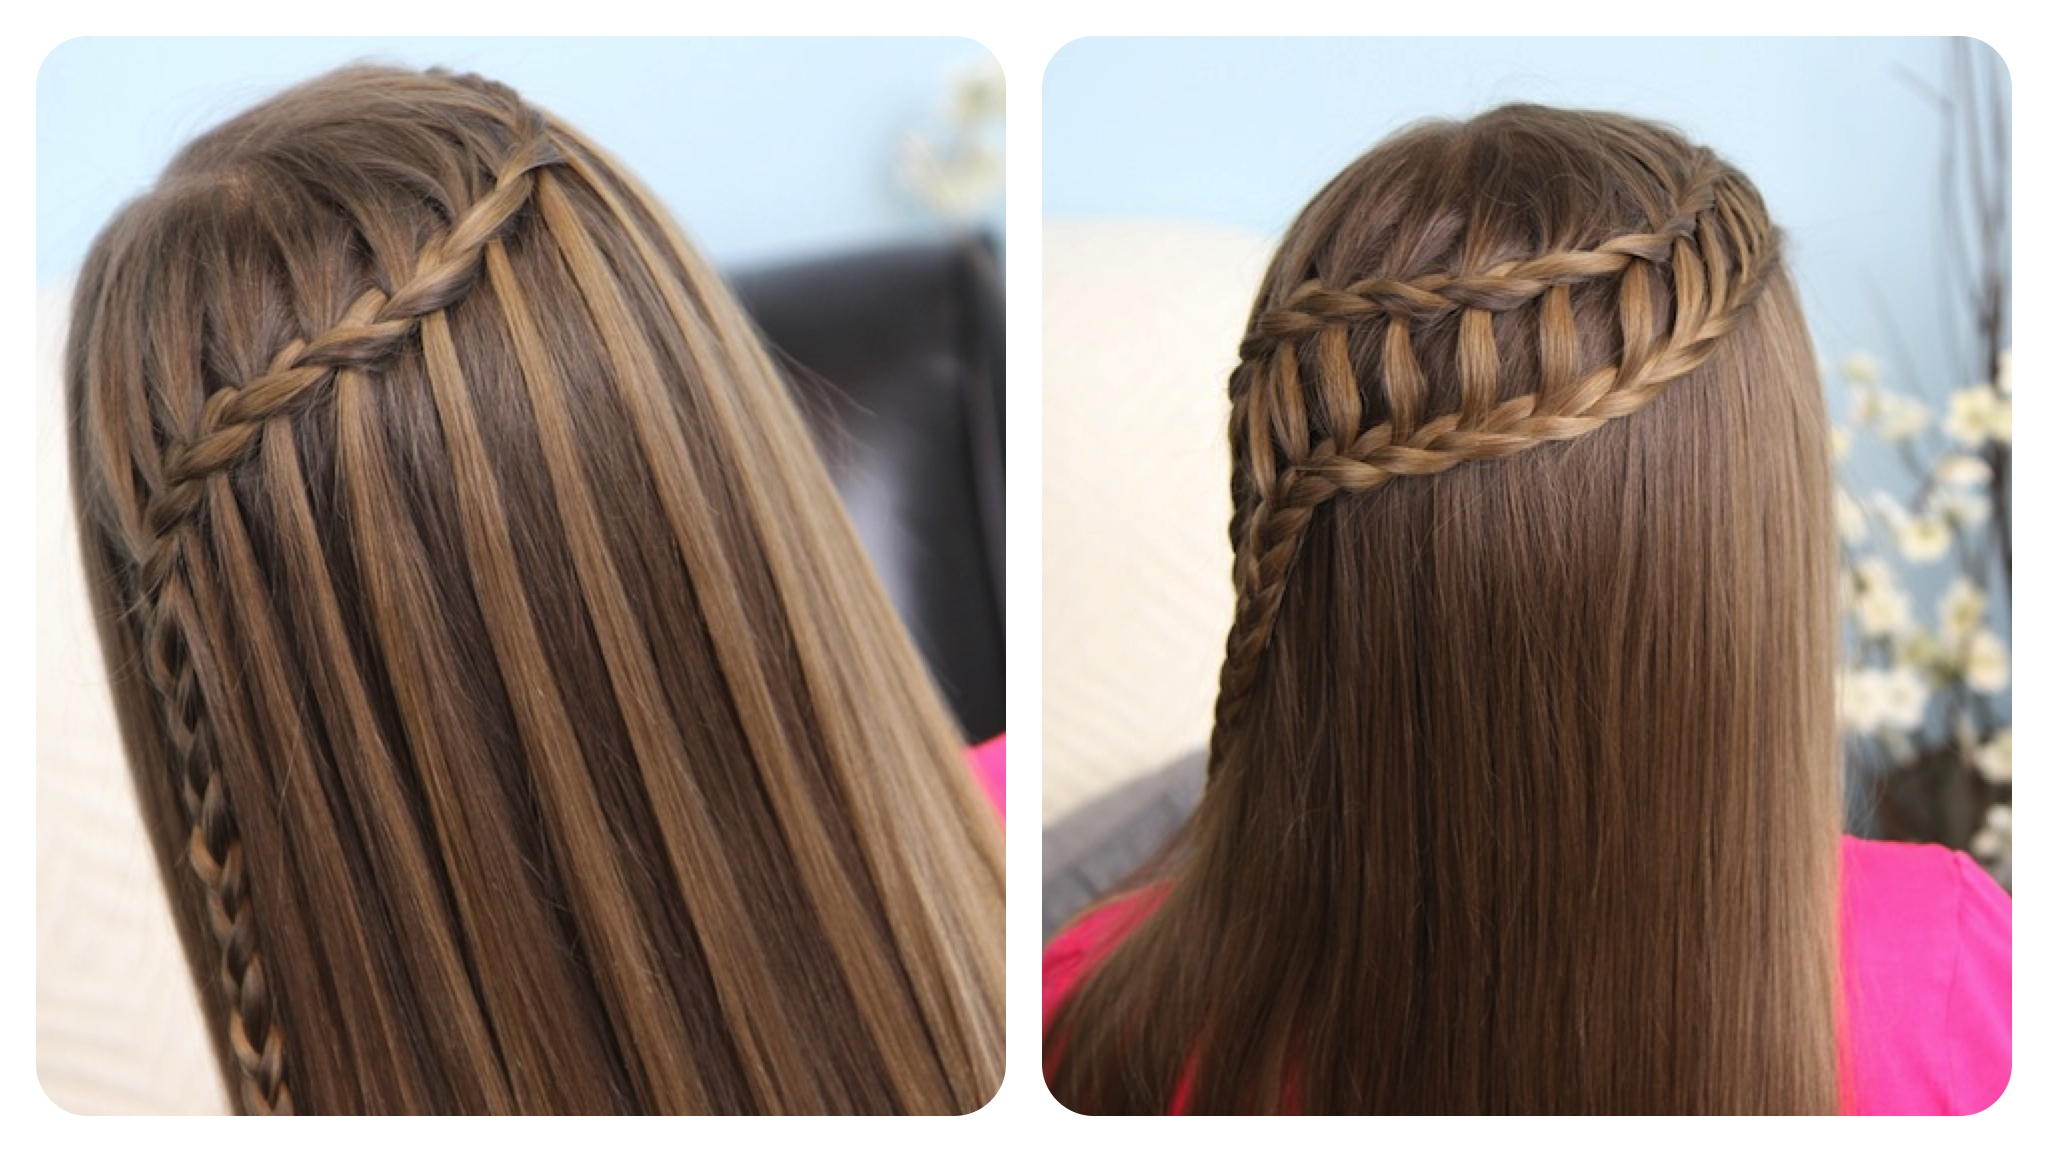 Cute Girls Hairstyles Waterfall Braid